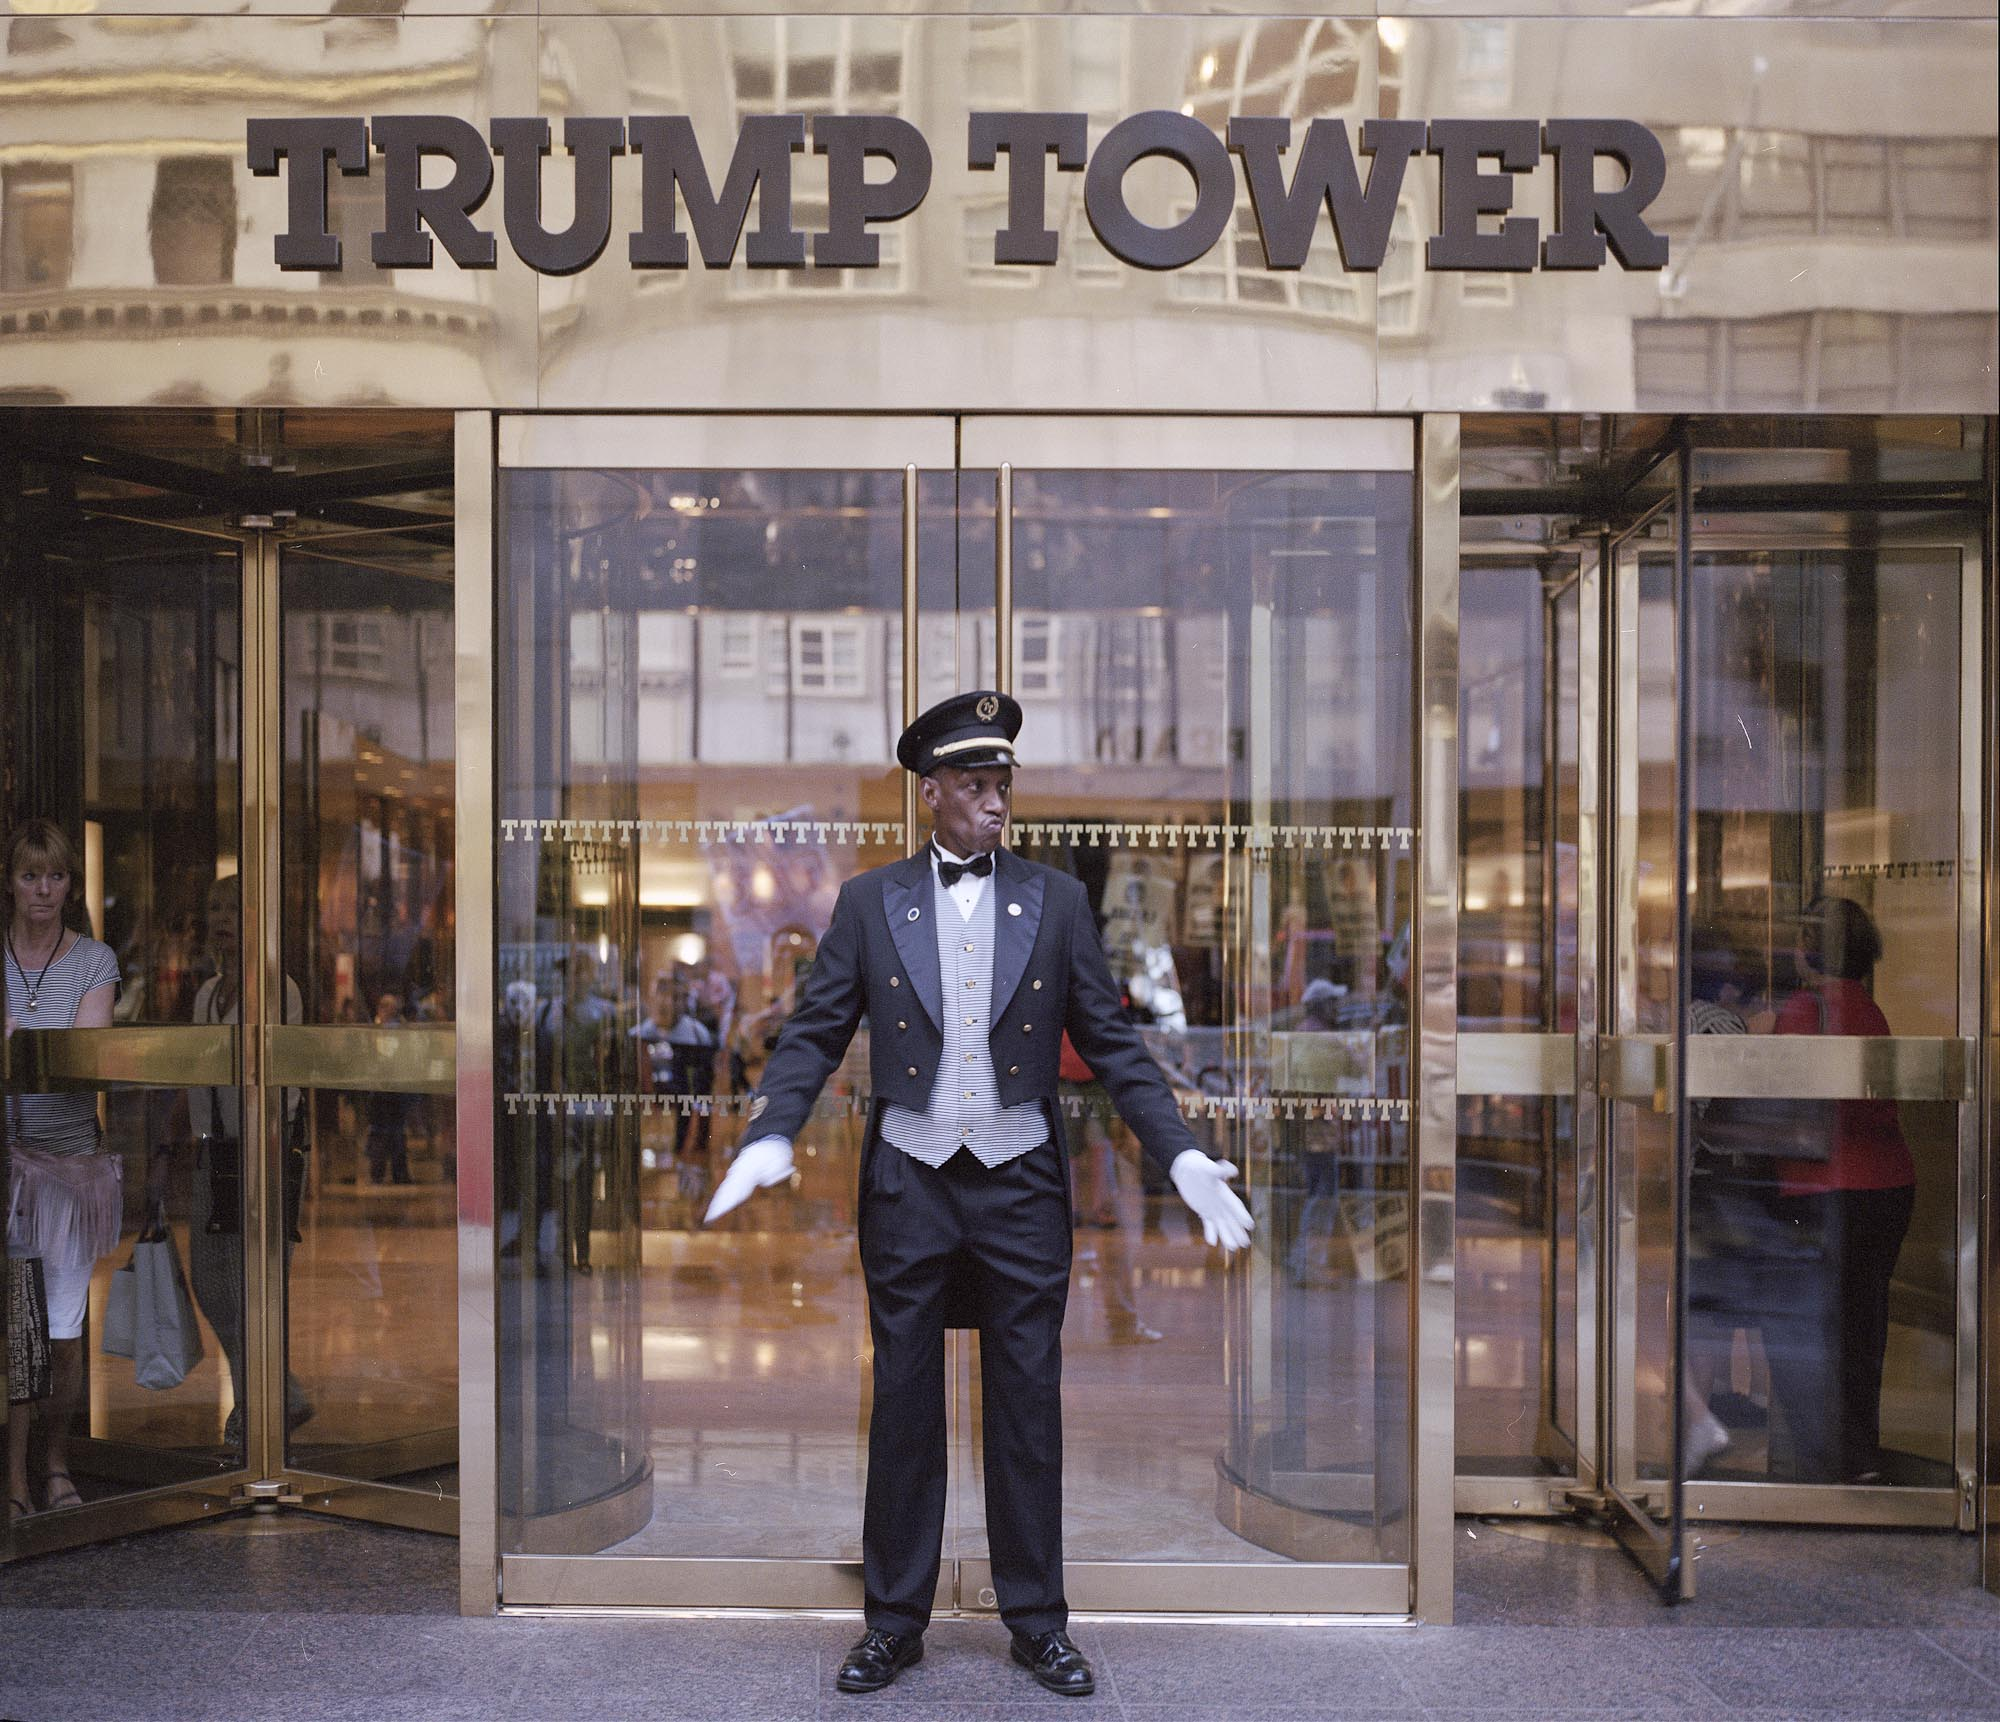 09.05.2015: Entrance Of the Trump Tower, Manhattan.